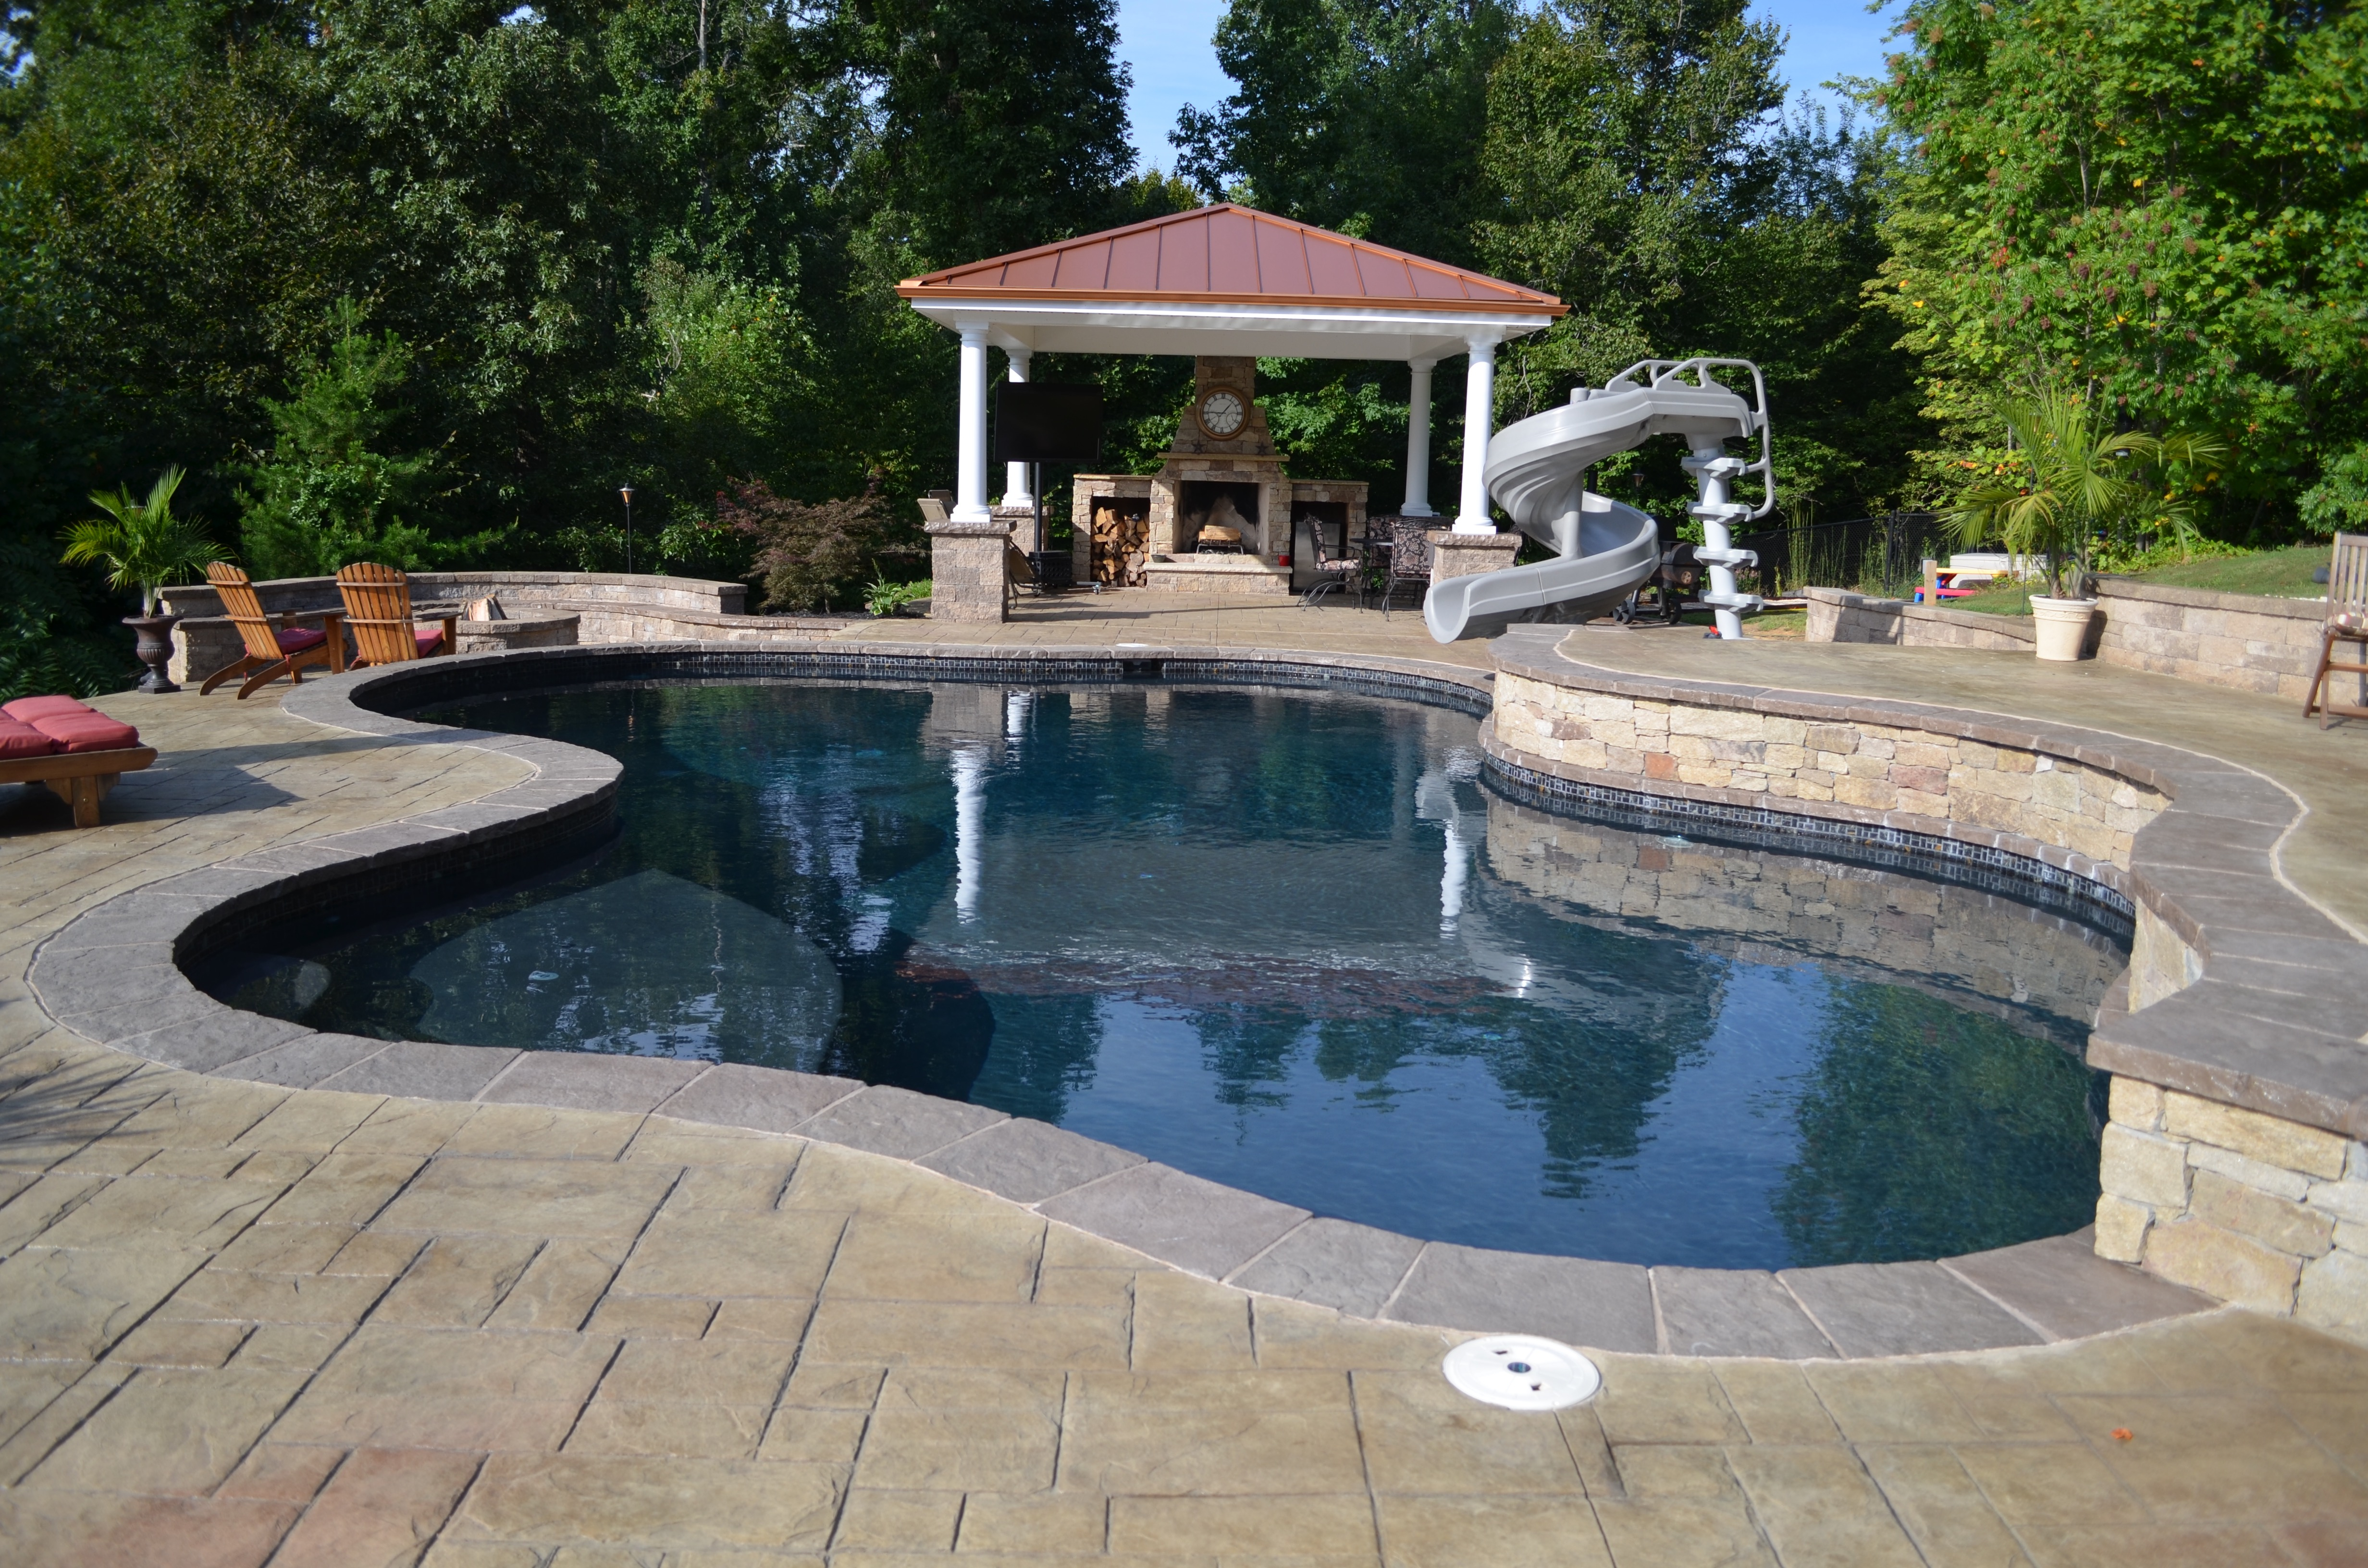 Swimming Pool Pavilion and Fire Pit